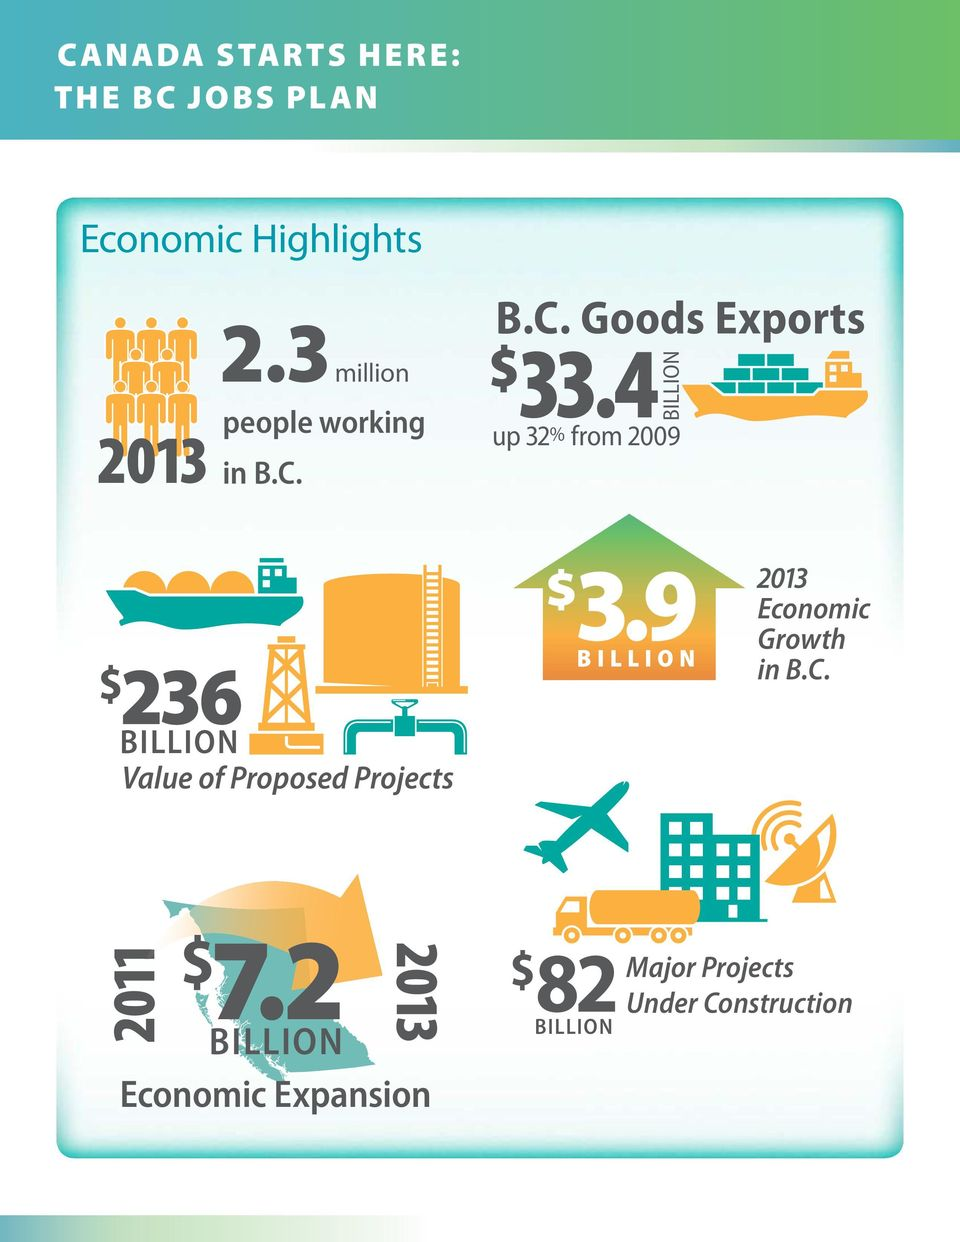 2 2013 Economic Expansion B.C. Goods Exports B.C. Goods Exports B.C. Goods Exports 33.4 33.4 33.4 up 32% from 2009 up 32% from 2009 up 32% from 2009 3.